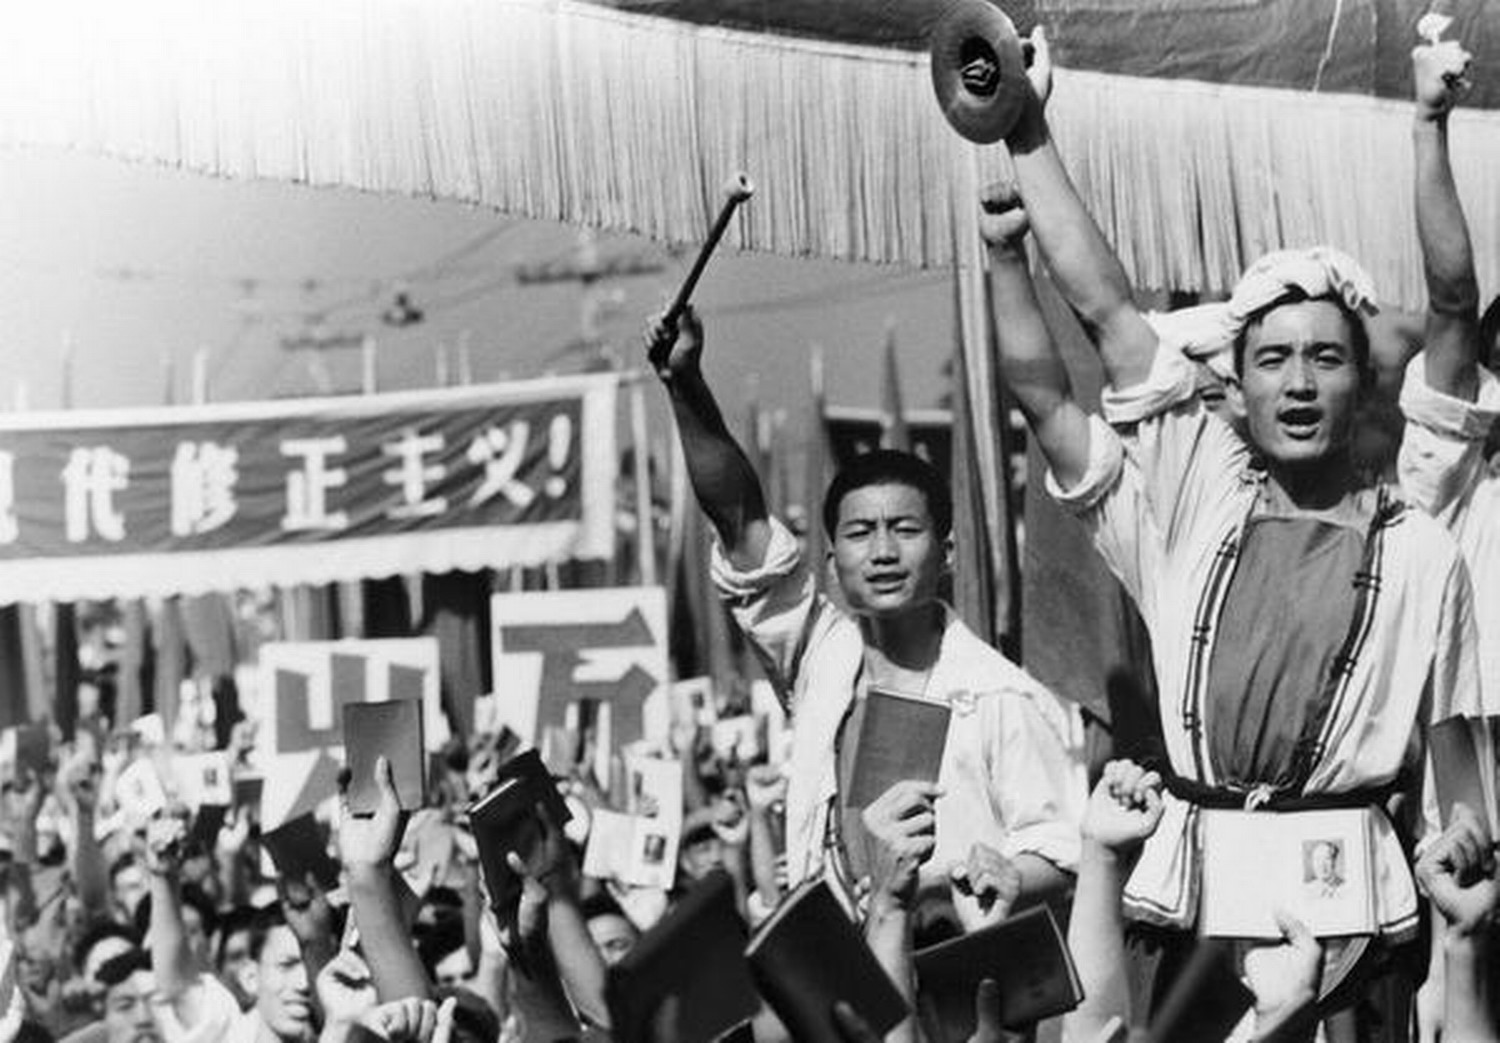 china cultural revolution Chinese cultural revolution on wn network delivers the latest videos and editable pages for news & events, including entertainment, music, sports, science and more, sign up and share your playlists.